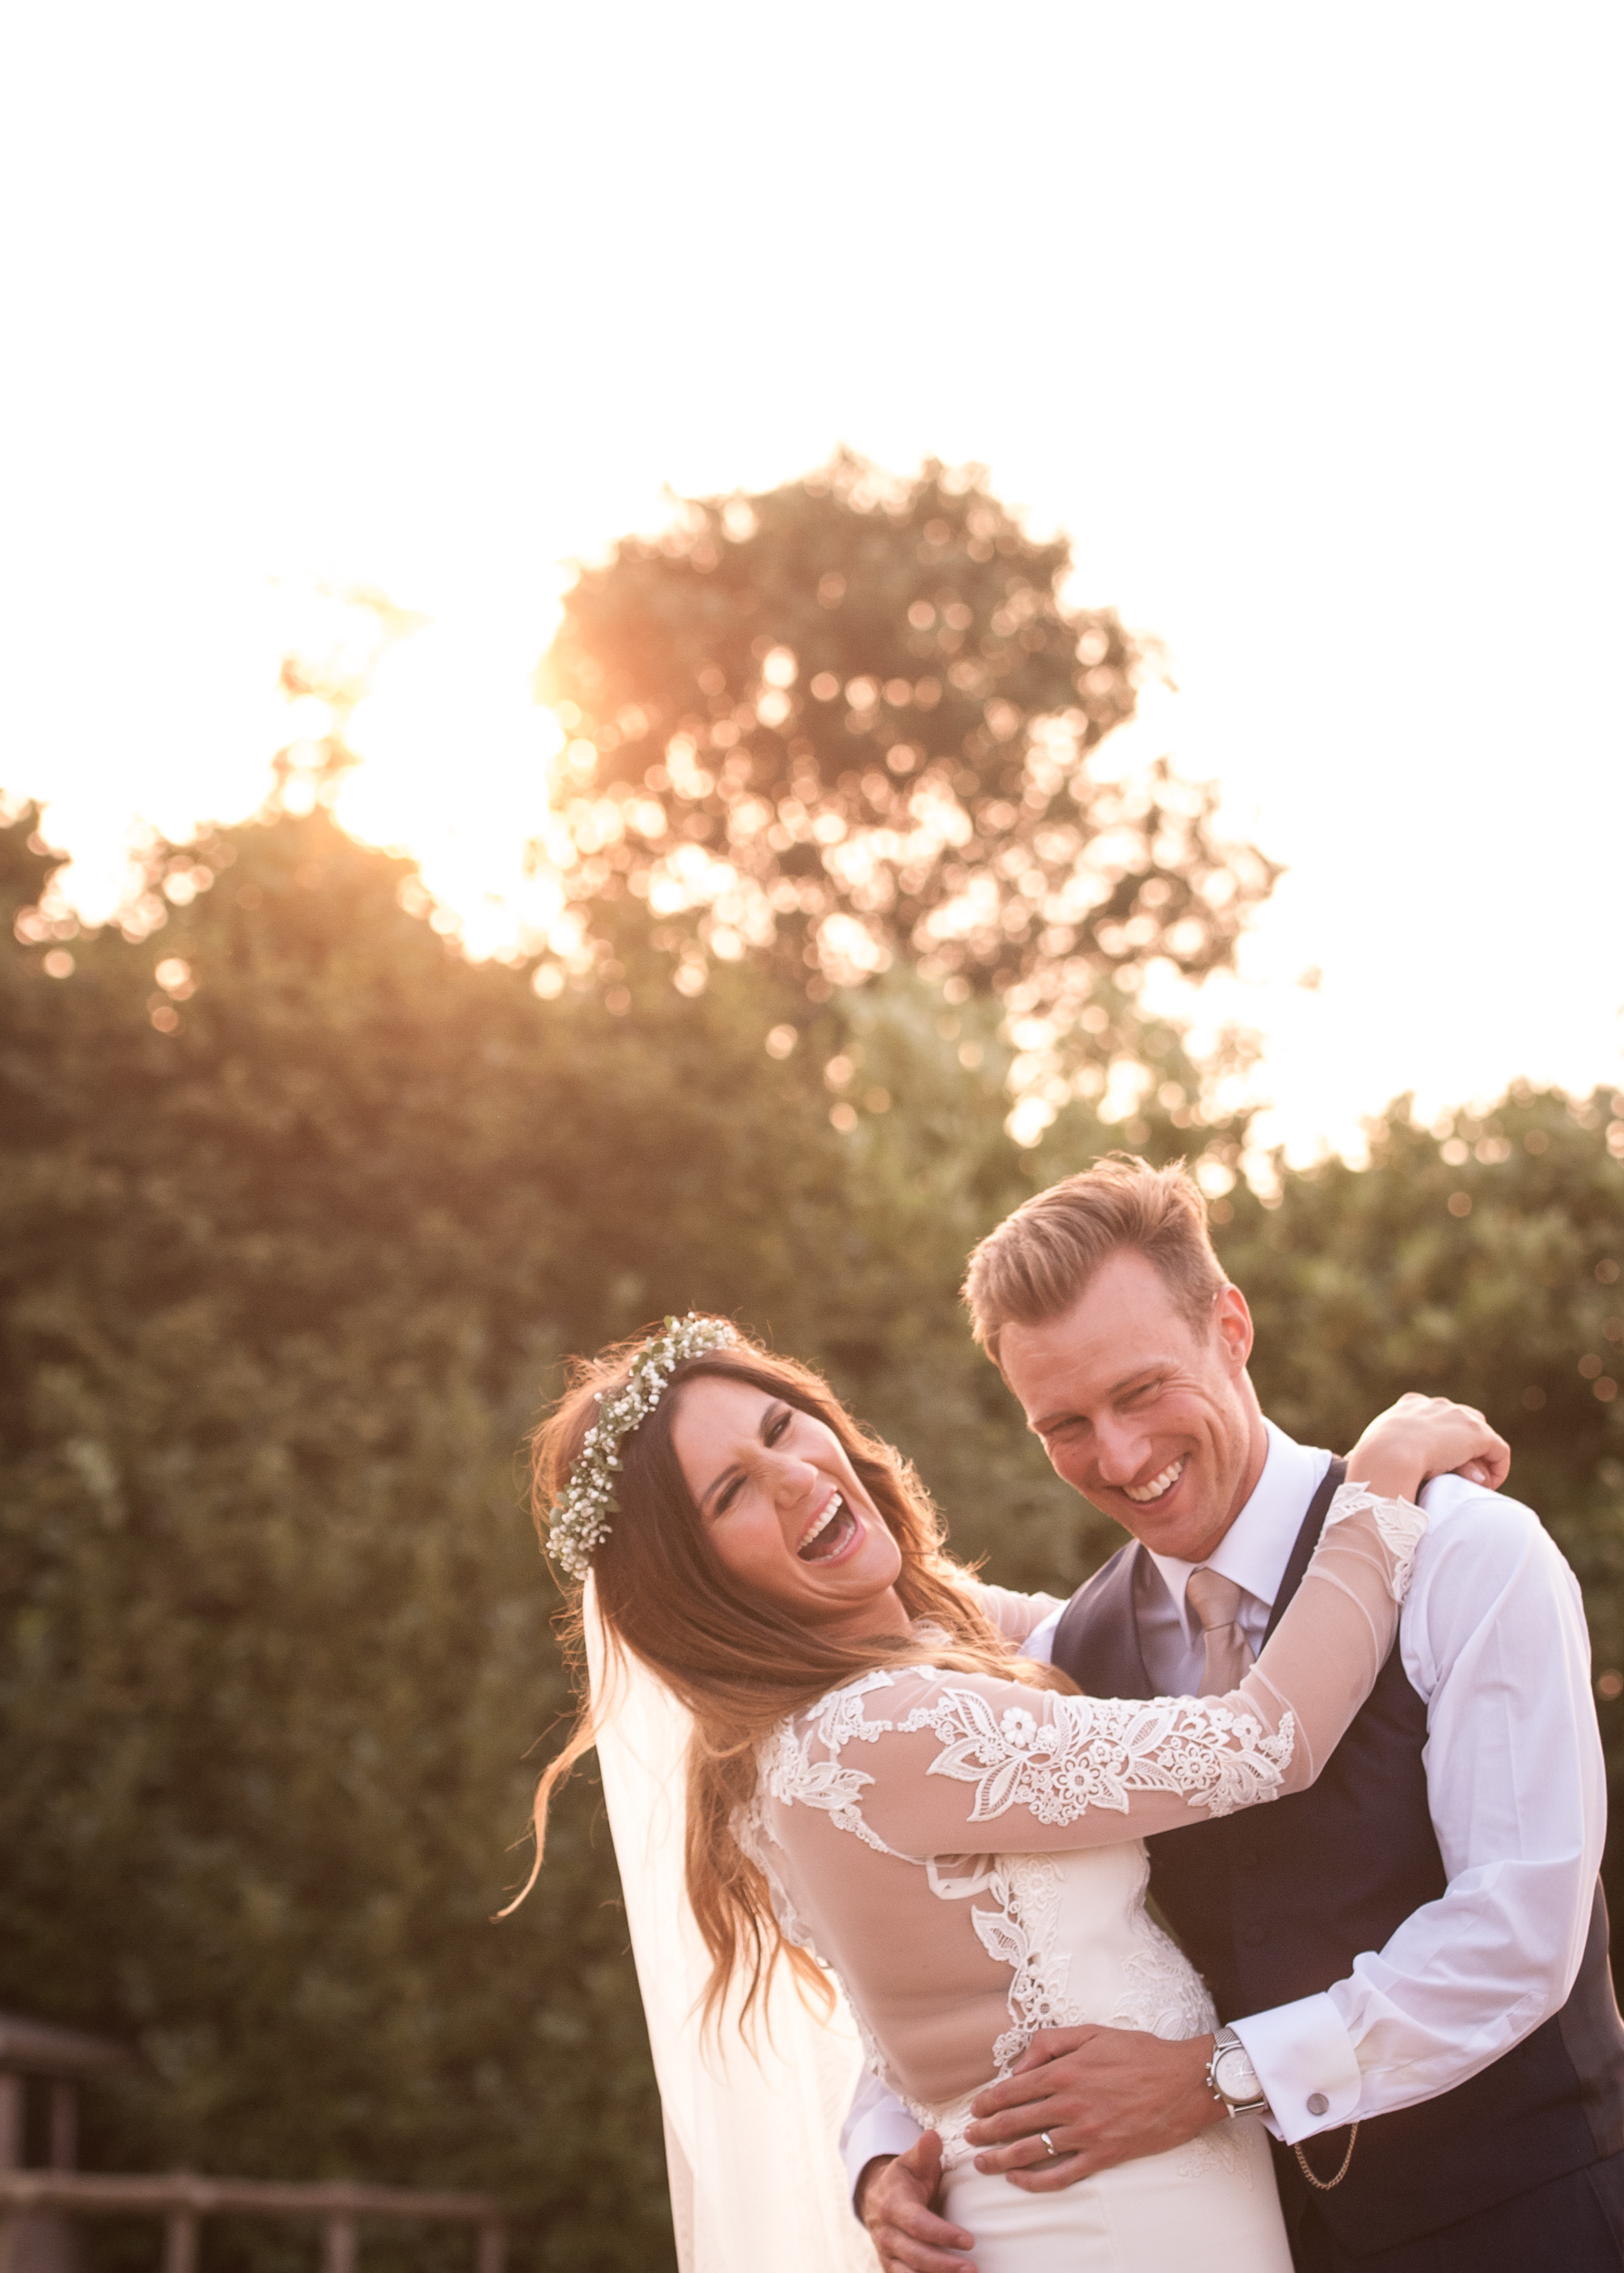 together is a beautiful place to be - The Newlyweds